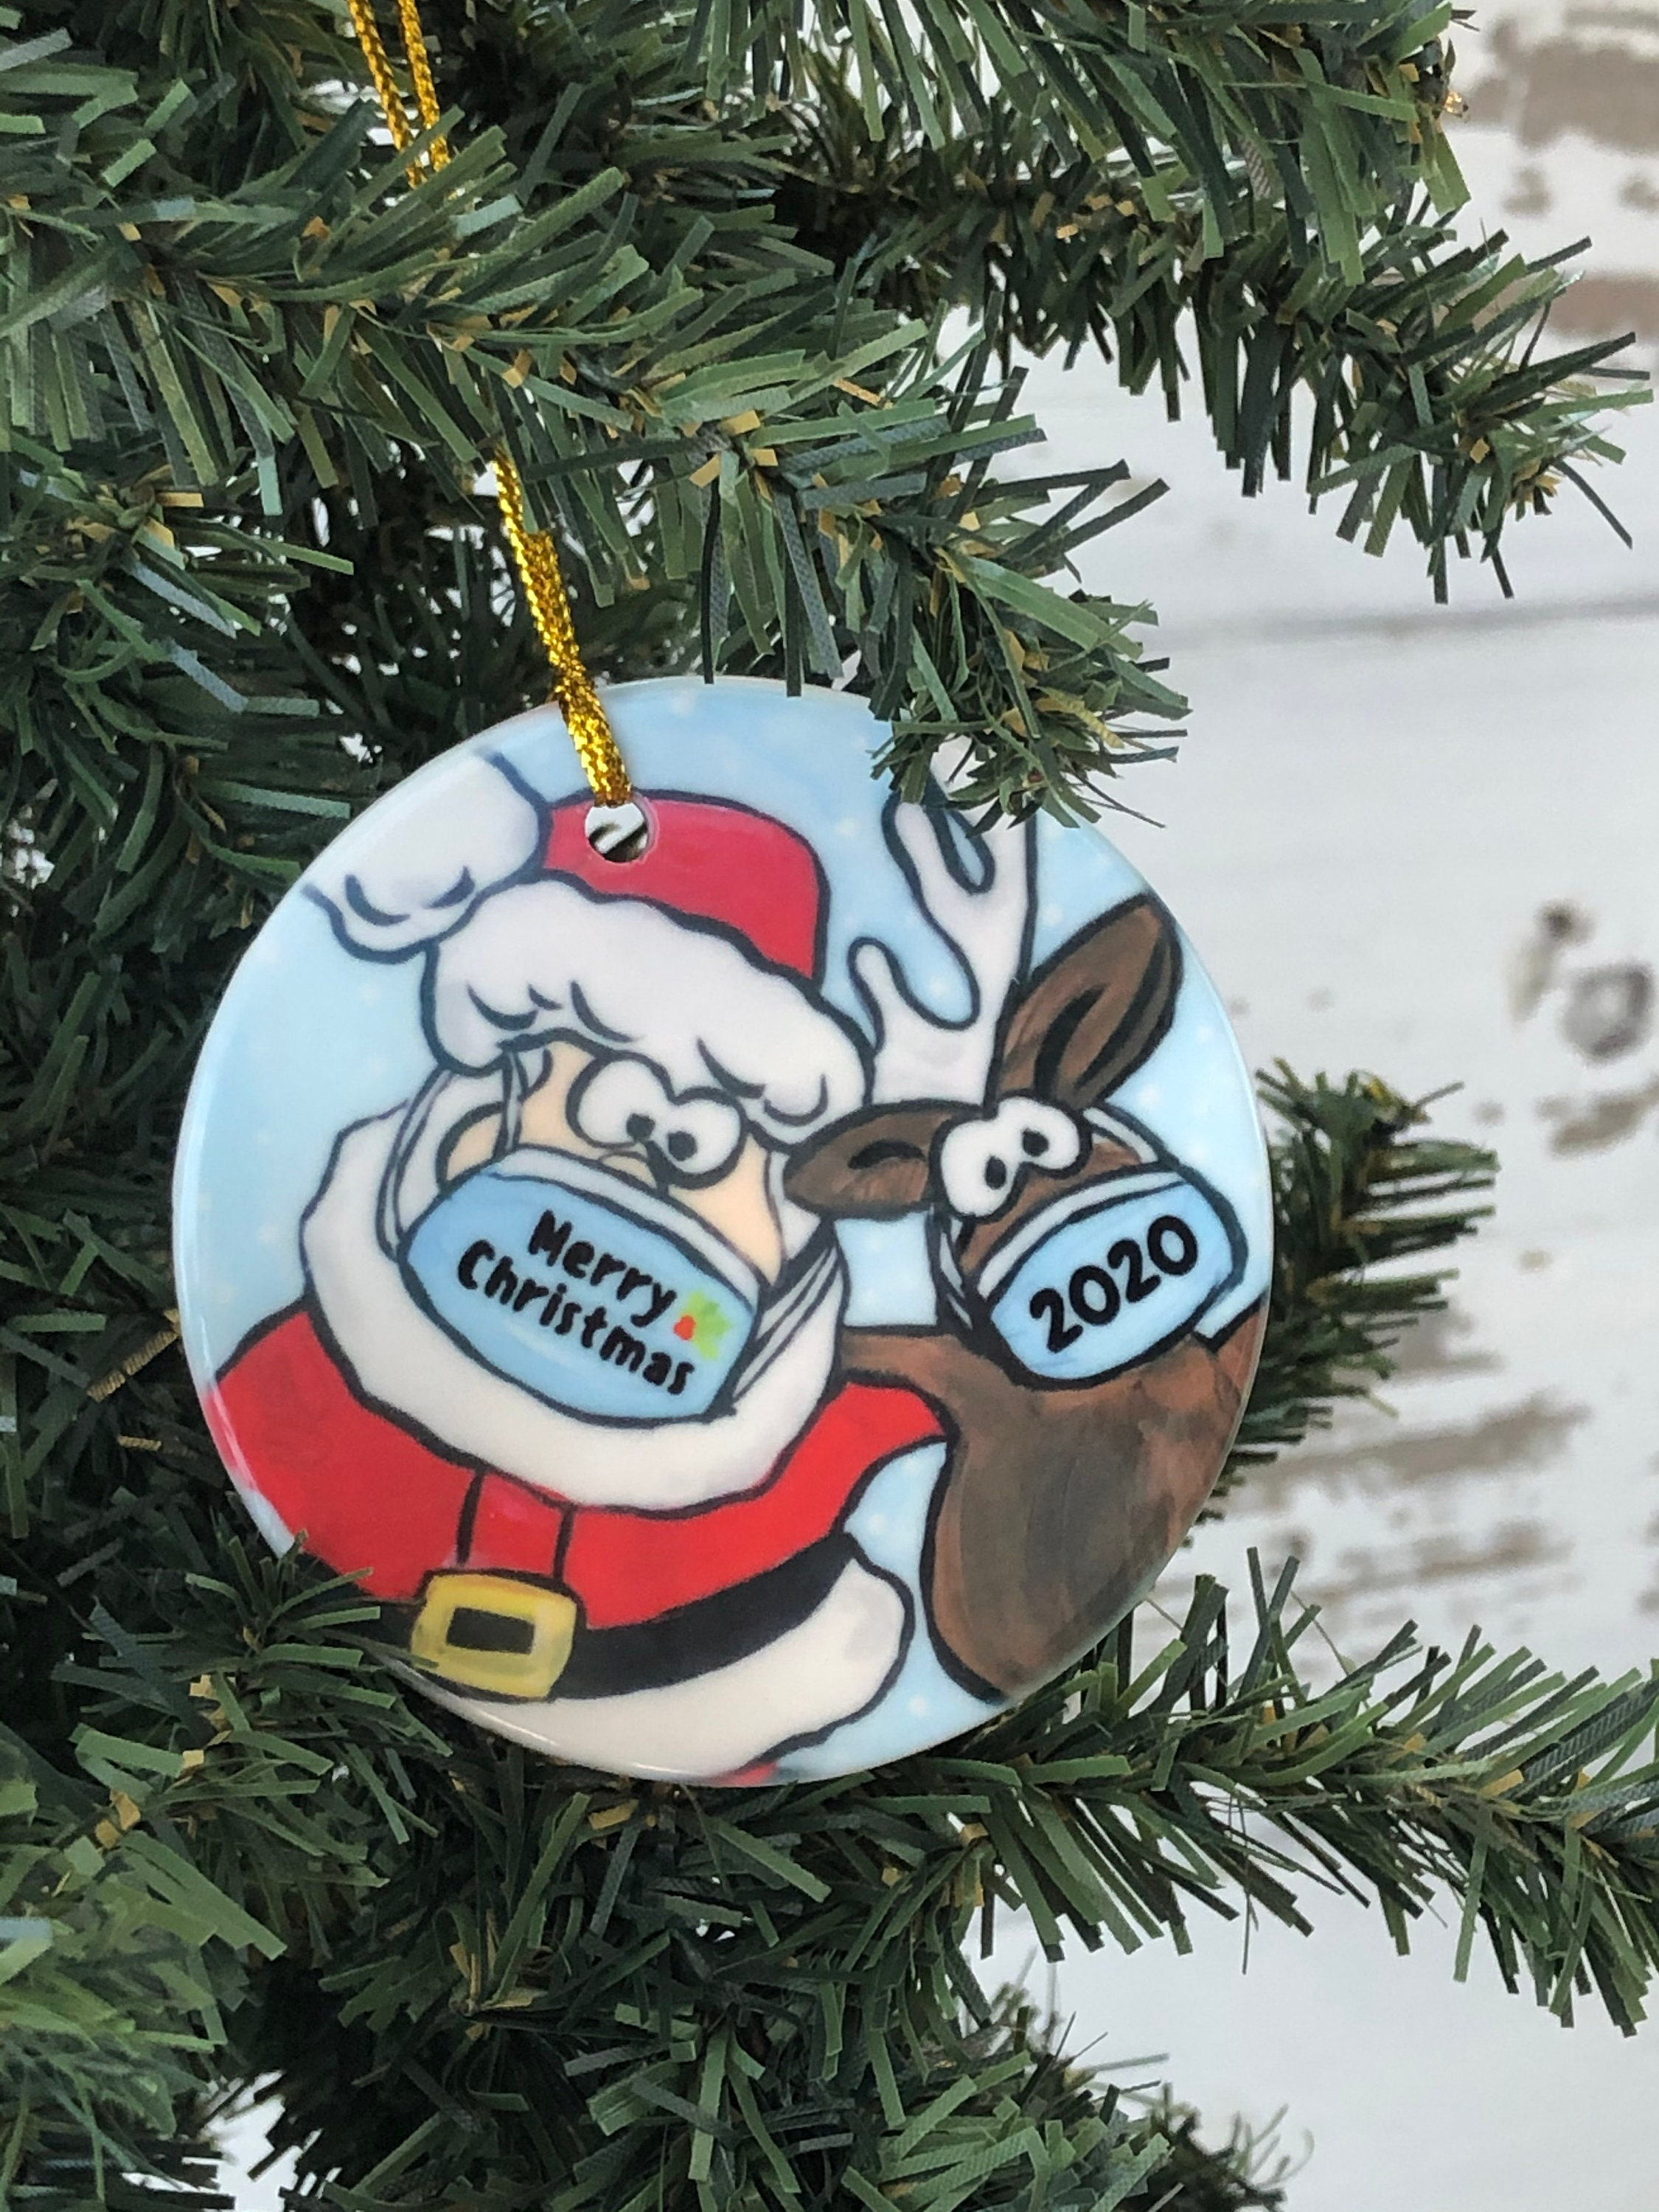 Covid Ornament Santa And Reindeer With Mask Pandemic Holiday Gift 2020 Virus Ornament Covid19 Christmas Gift Fun Gift Tree Trimming